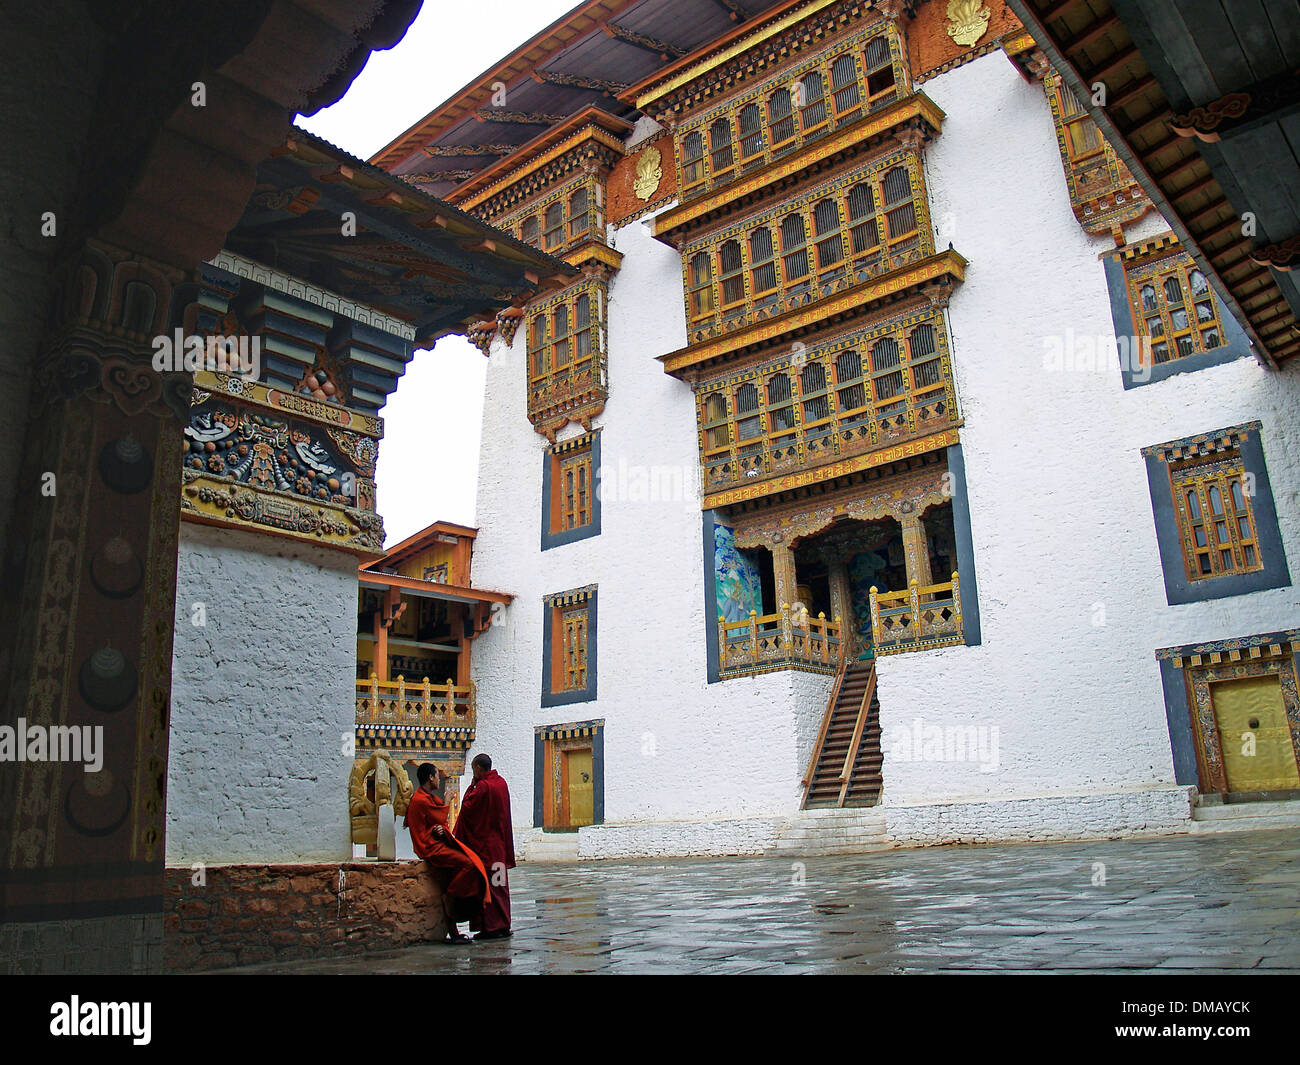 Two monks in the courtyard of the Punakha Dzong,Bhutan - Stock Image